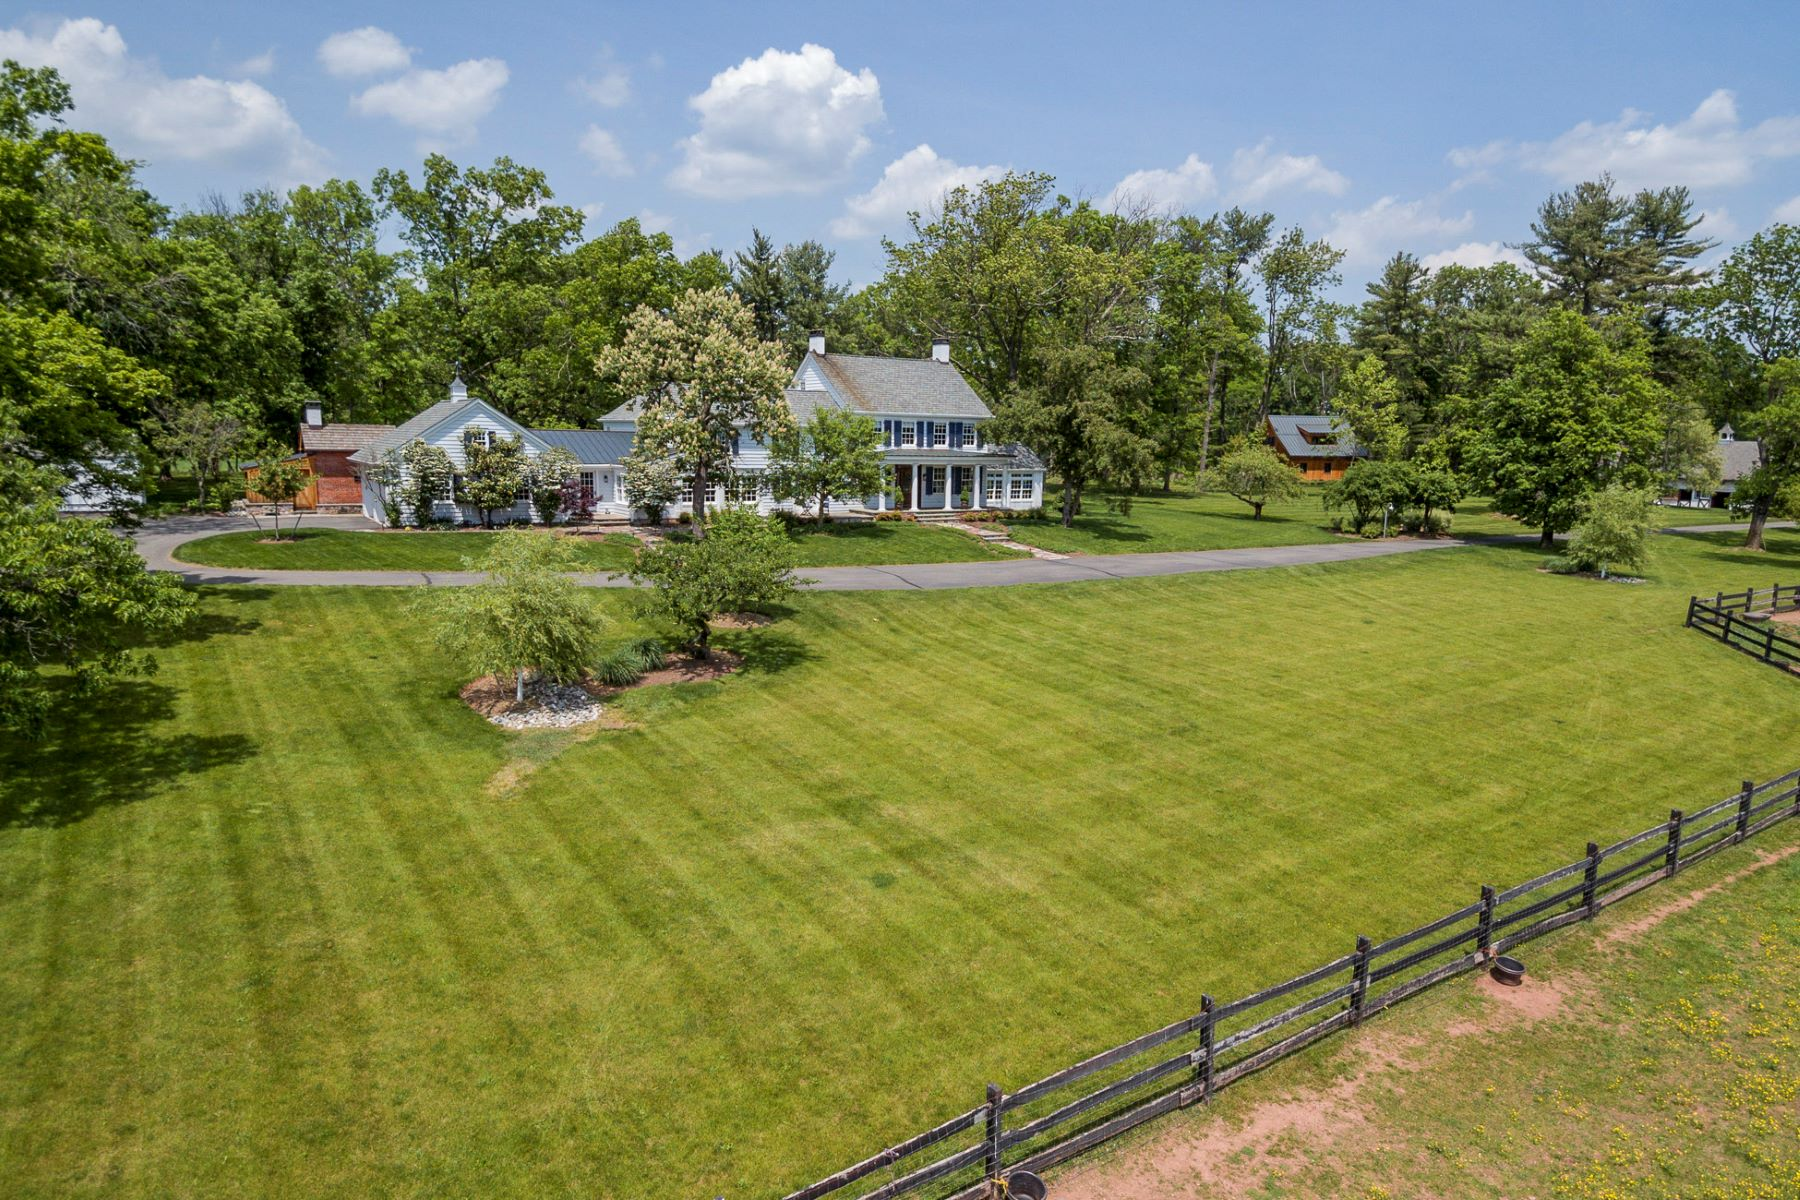 Частный односемейный дом для того Продажа на Historic Farm Reimagined for the Modern Equestrian - Hopewell Township 266 Province Line Road, Skillman, Нью-Джерси, 08558 Соединенные ШтатыВ/Около: Hopewell Township